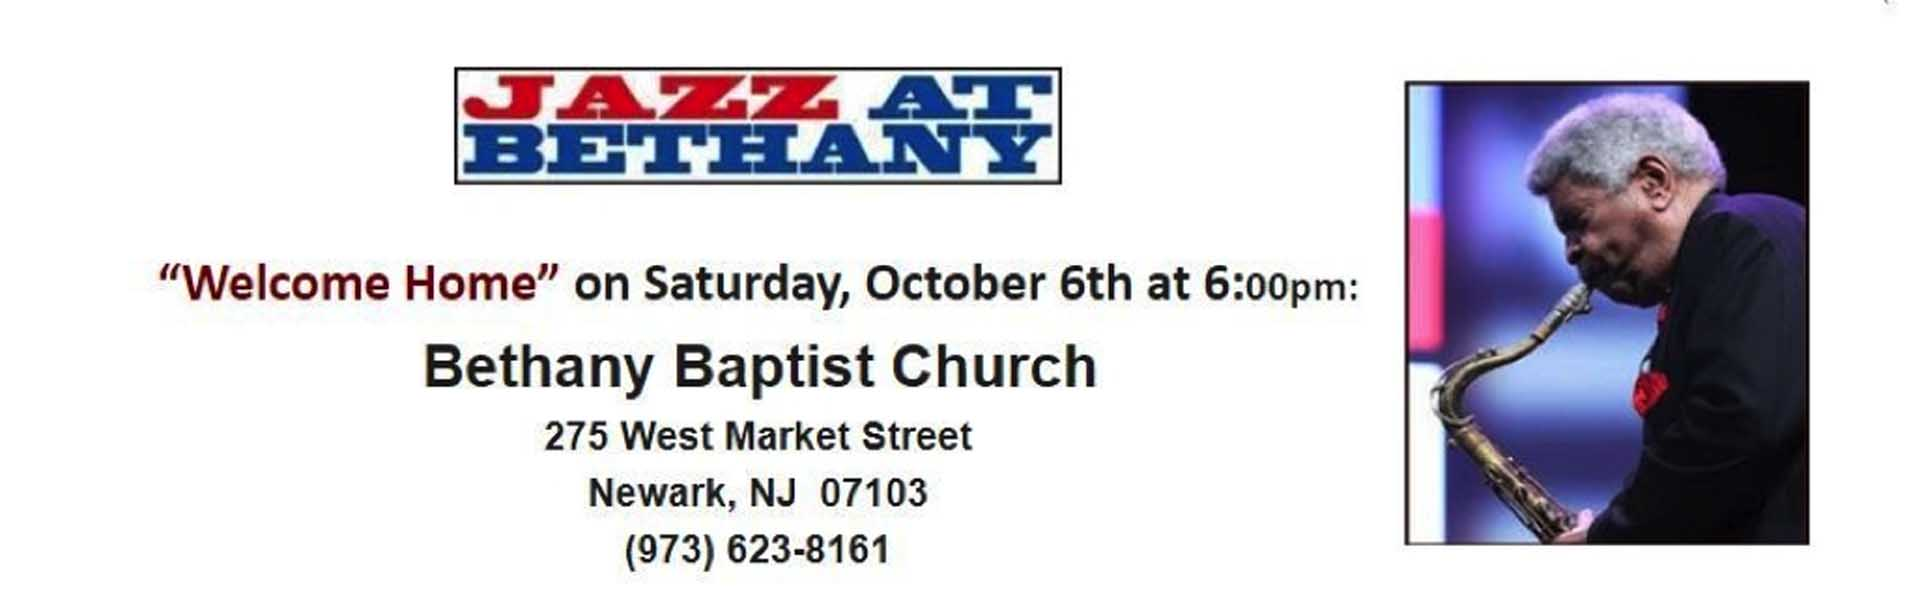 Sat Oct 6 6-7 PM Bethany Baptist Church Jazz Vespers Saxophonist George Coleman.jpg